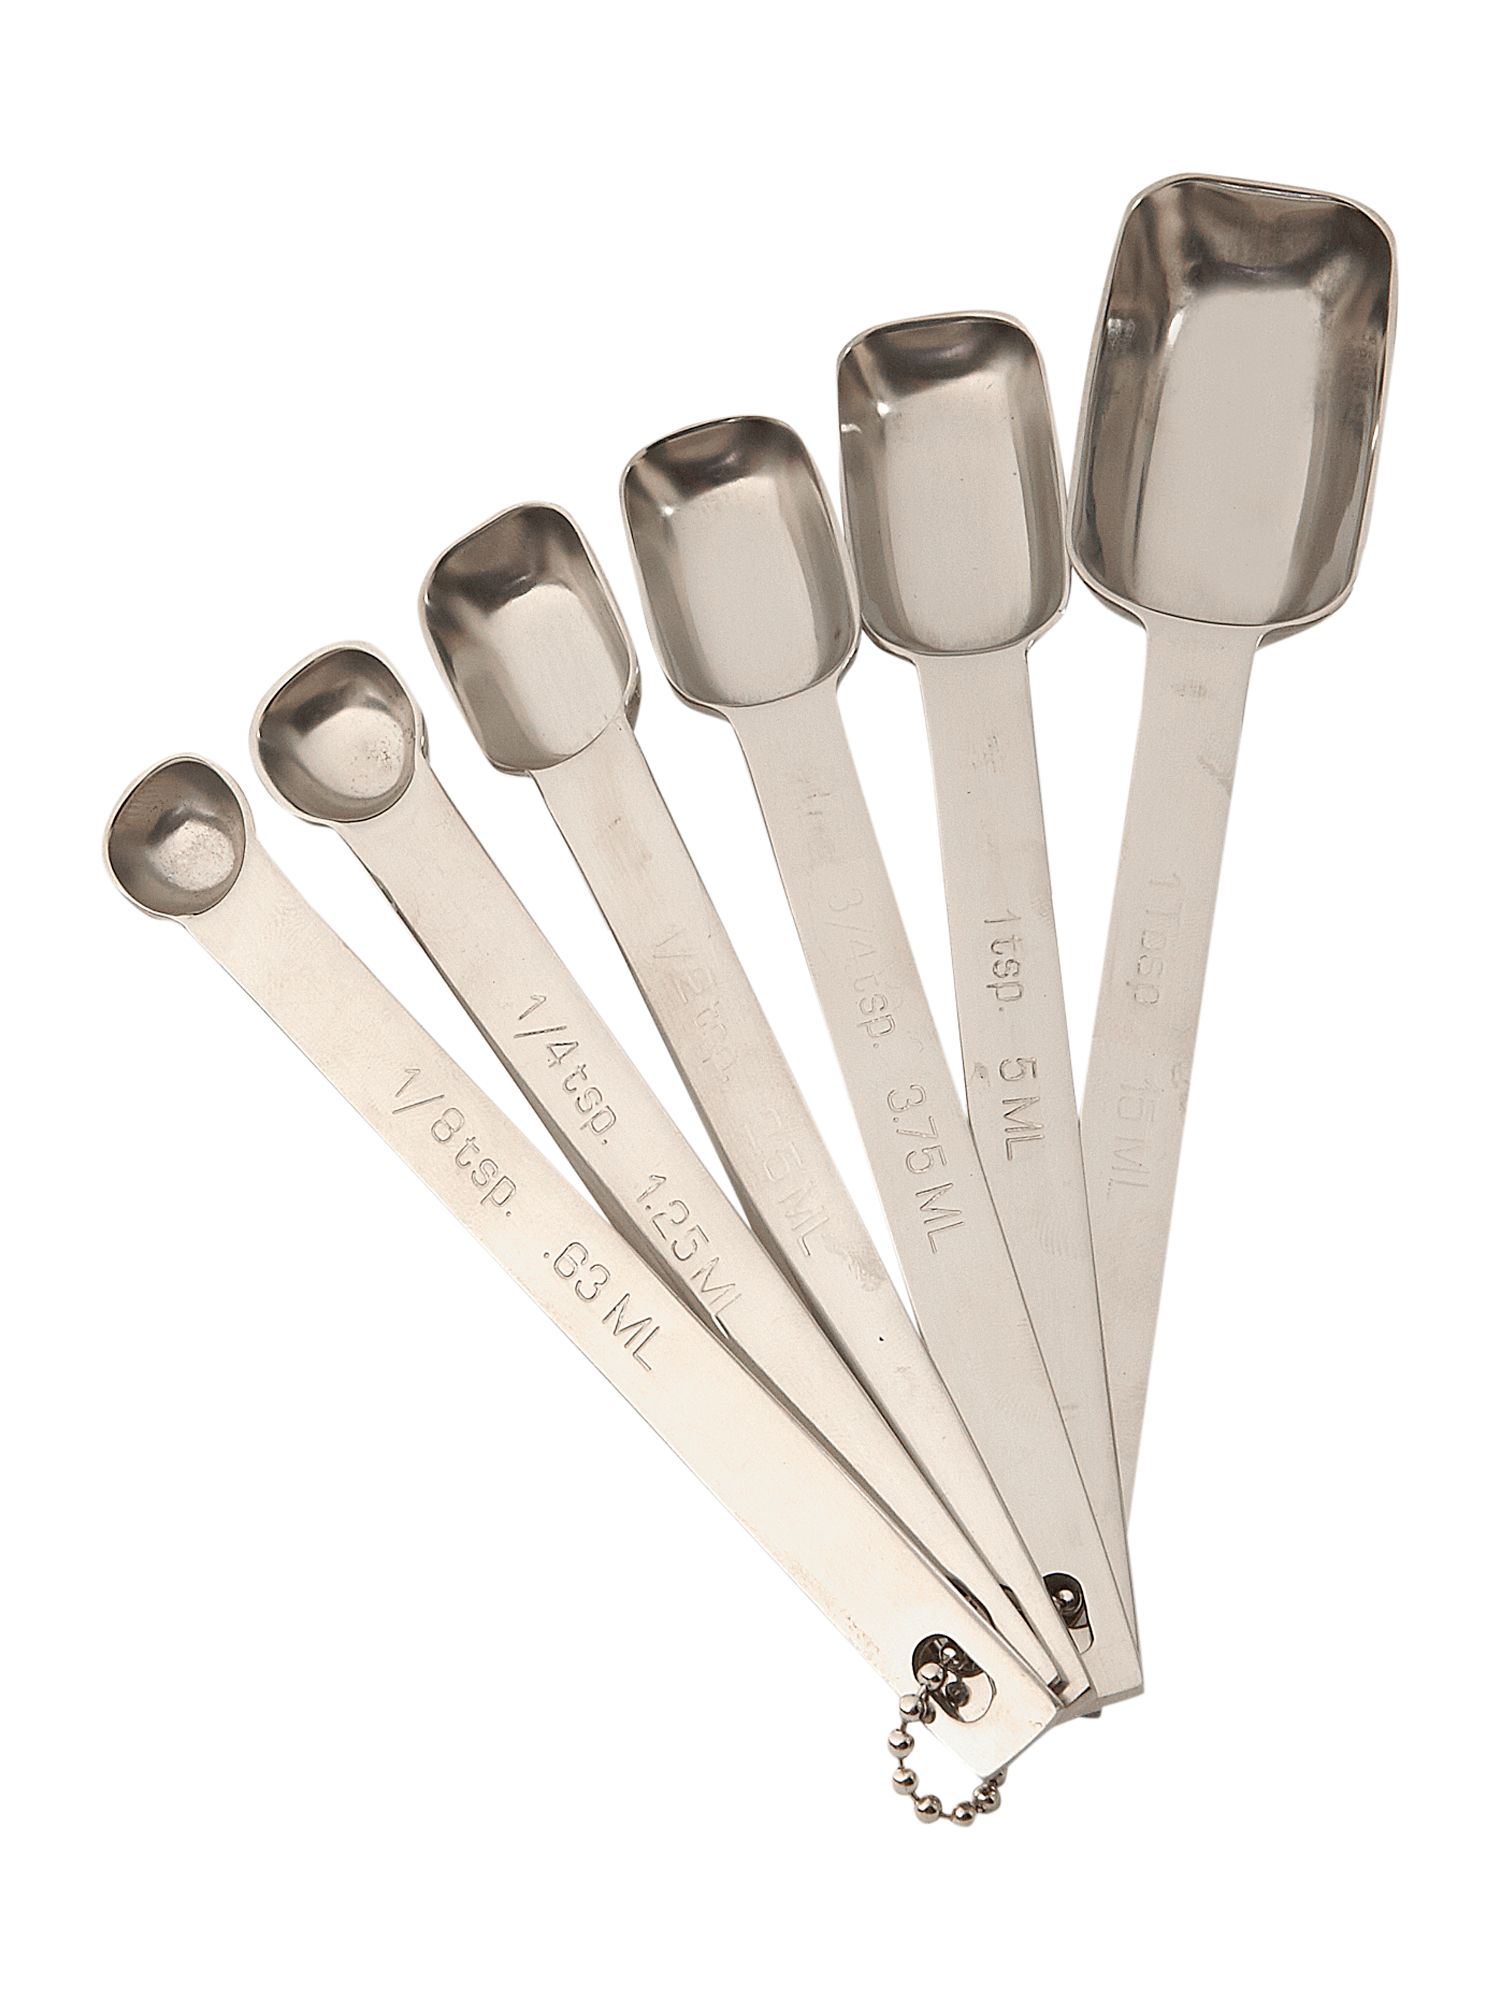 6 piece stainless steel measuring spoon set